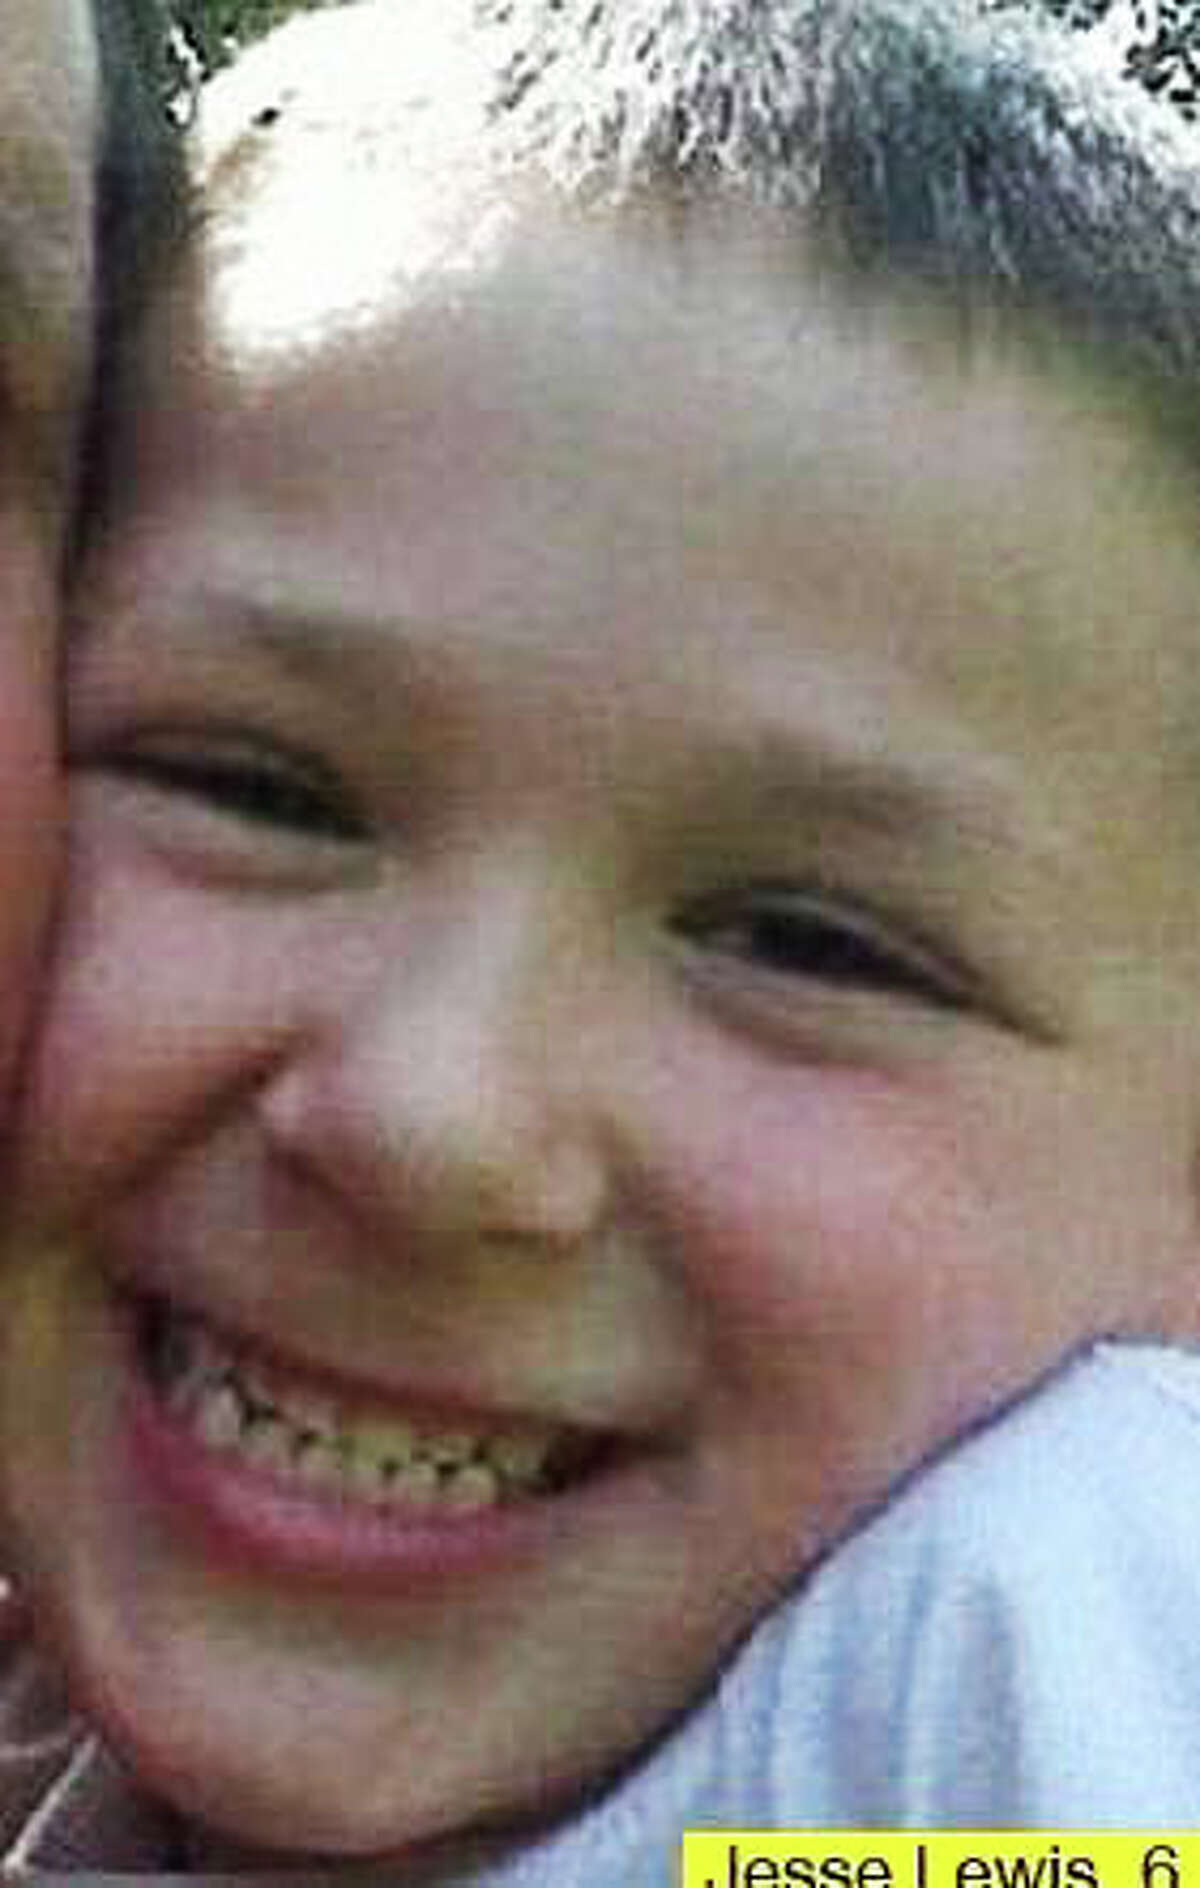 Jesse Lewis, 6-year-old victim of the Sandy Hook Elementary School shooting in Newtown, Conn. on Friday, Dec. 14, 2012.